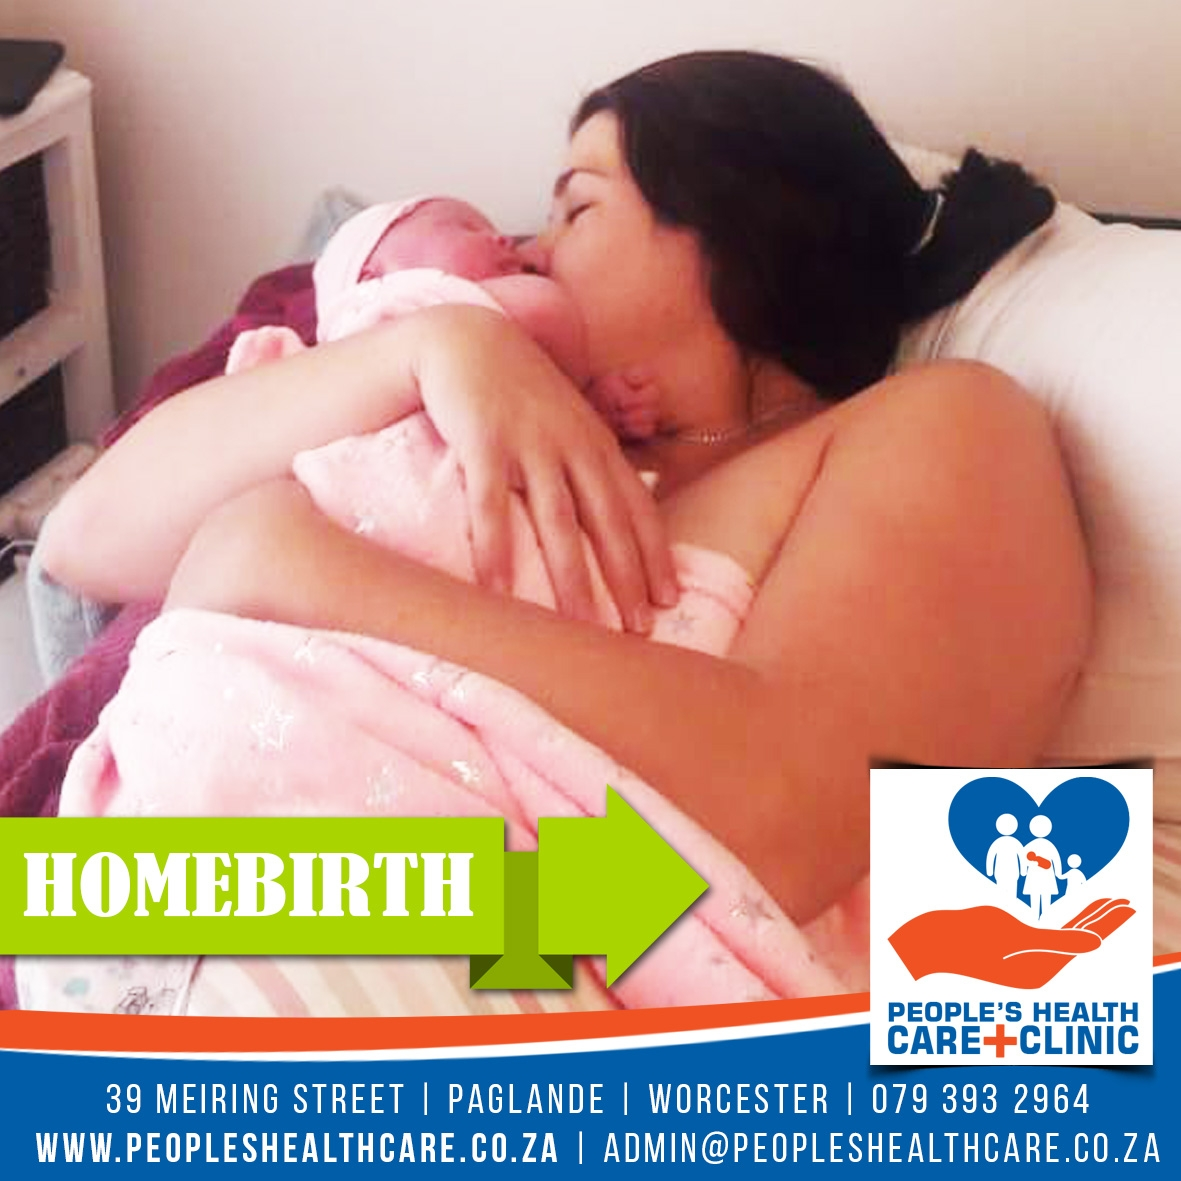 peoples-health-care-clinic-worcester-homebirth